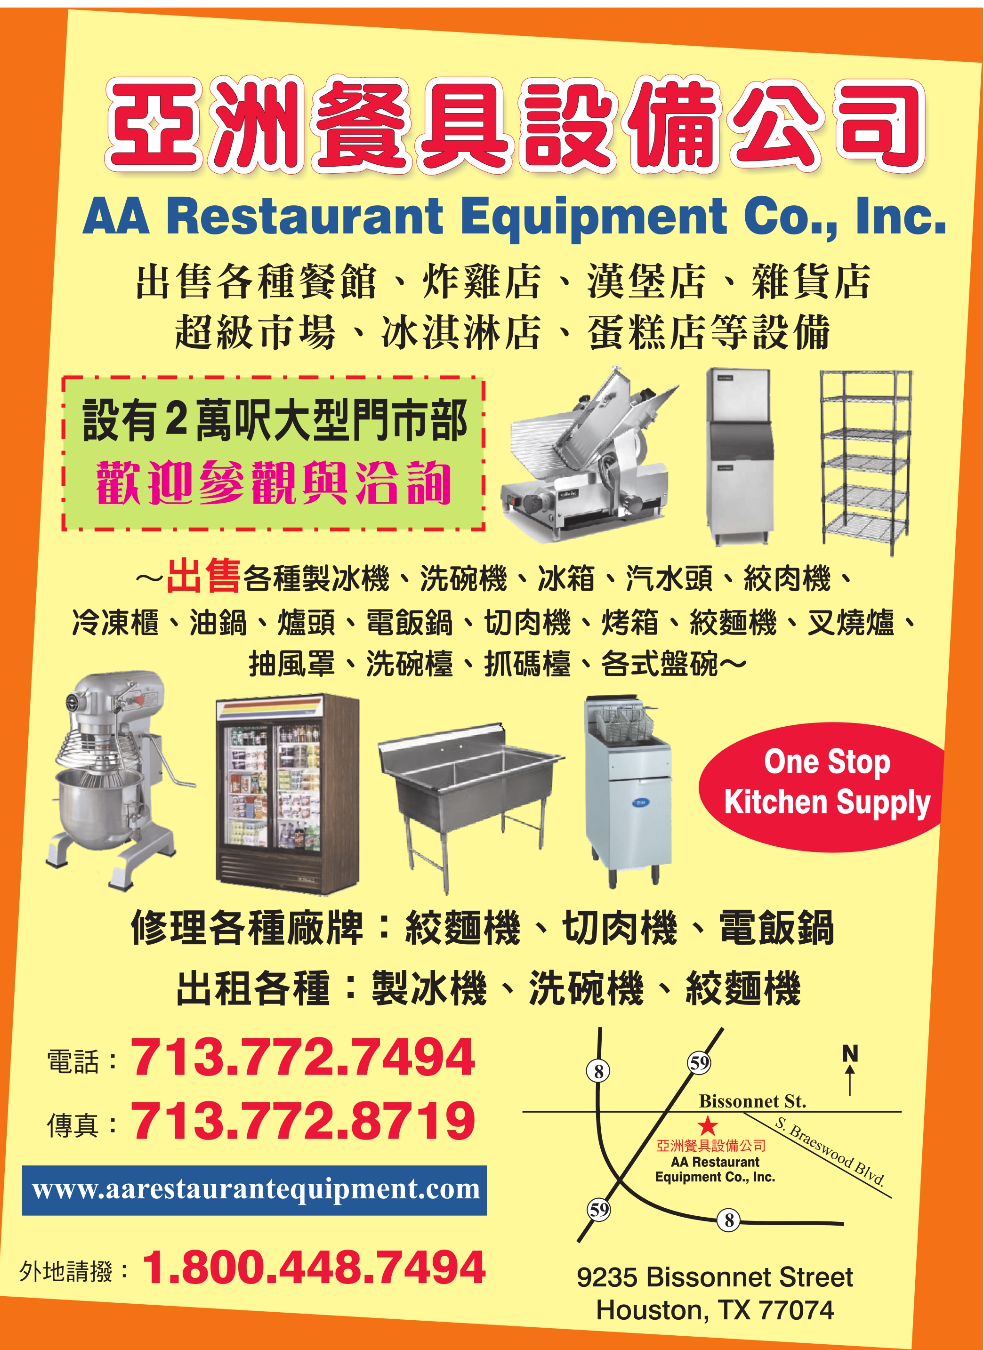 AA RESTAURANT EQUIPMENT 亞洲餐具